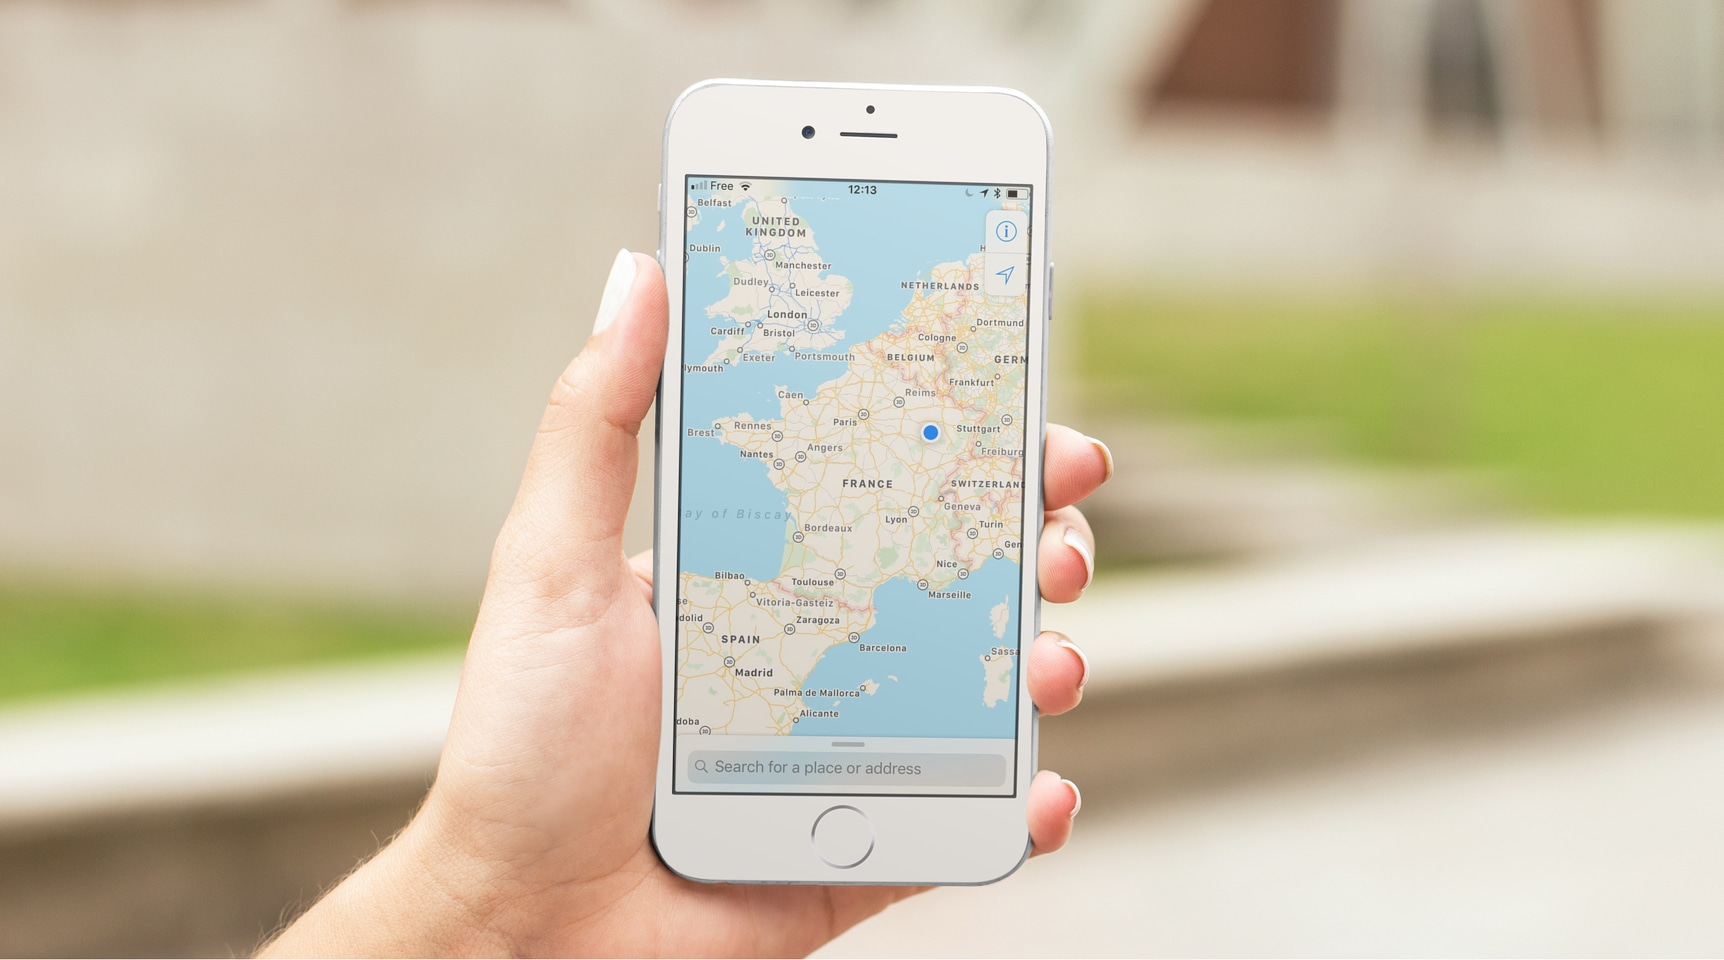 3 ways to find the GPS coordinates of a location on iPhone